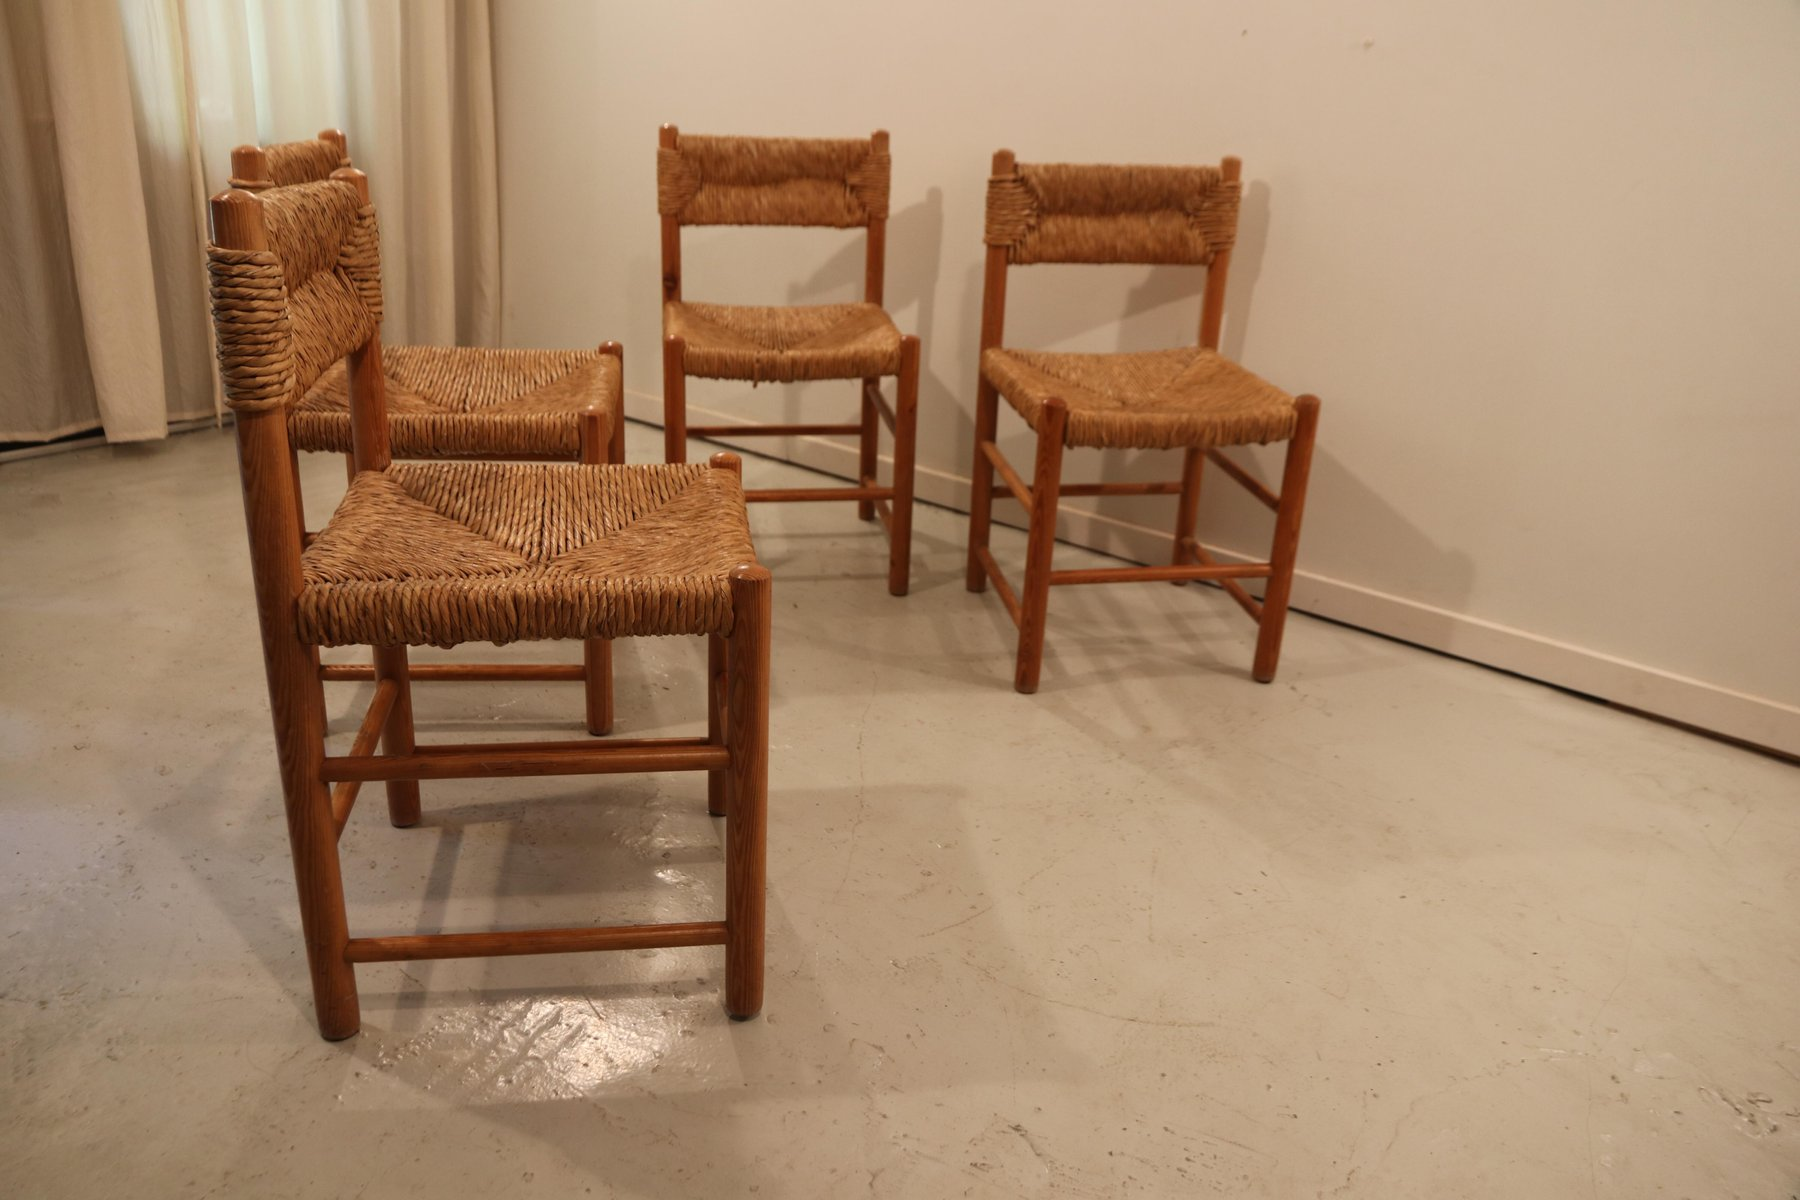 Dining Room Chairs Set Of 4 Dordogne Dining Room Chairs By Charlotte Perriand For Sentou 1960s Set Of 4